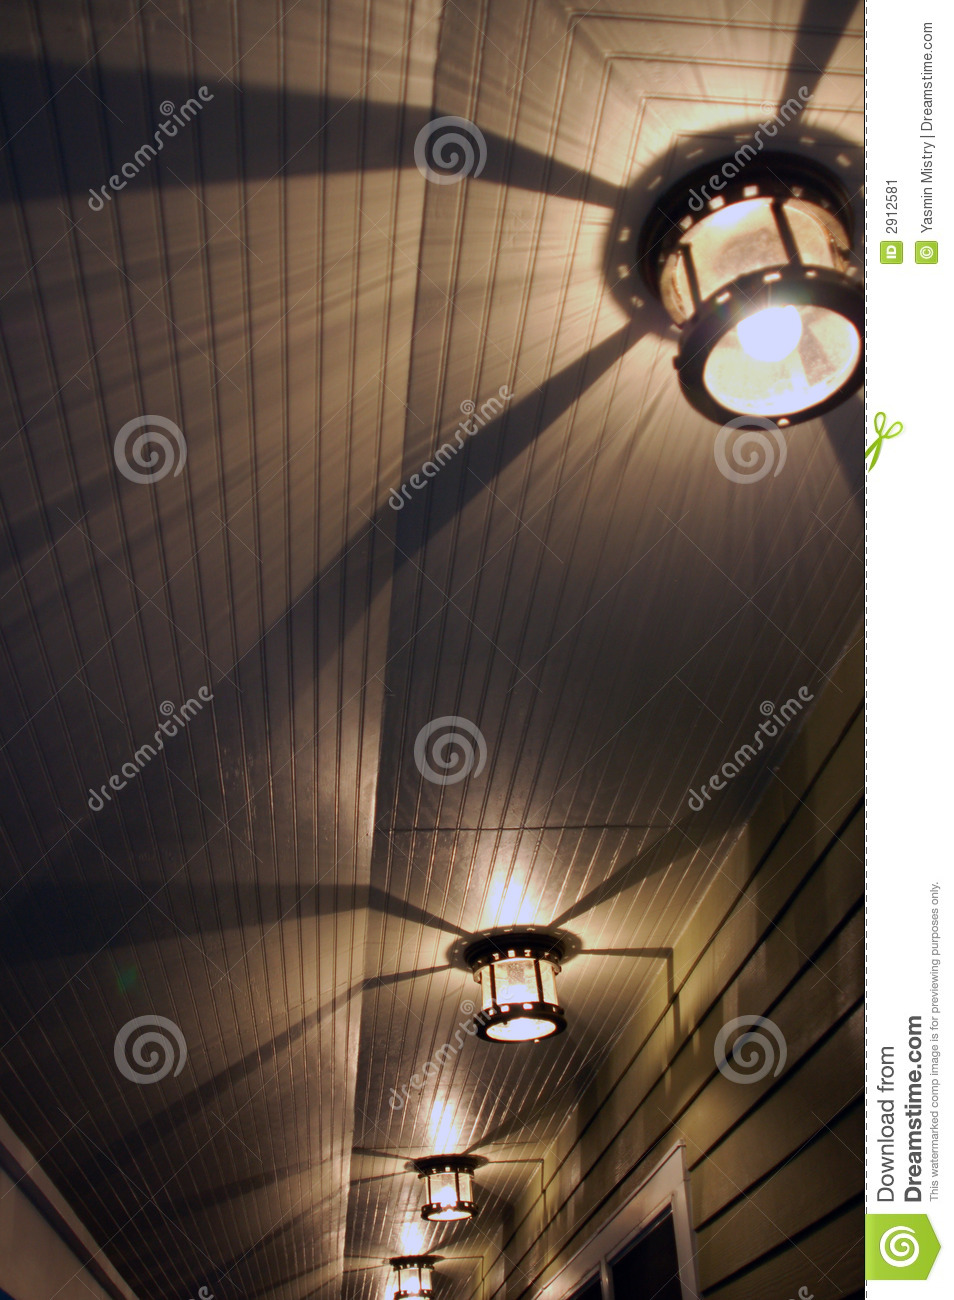 Ceiling lights that cast shadows : Lights shadows